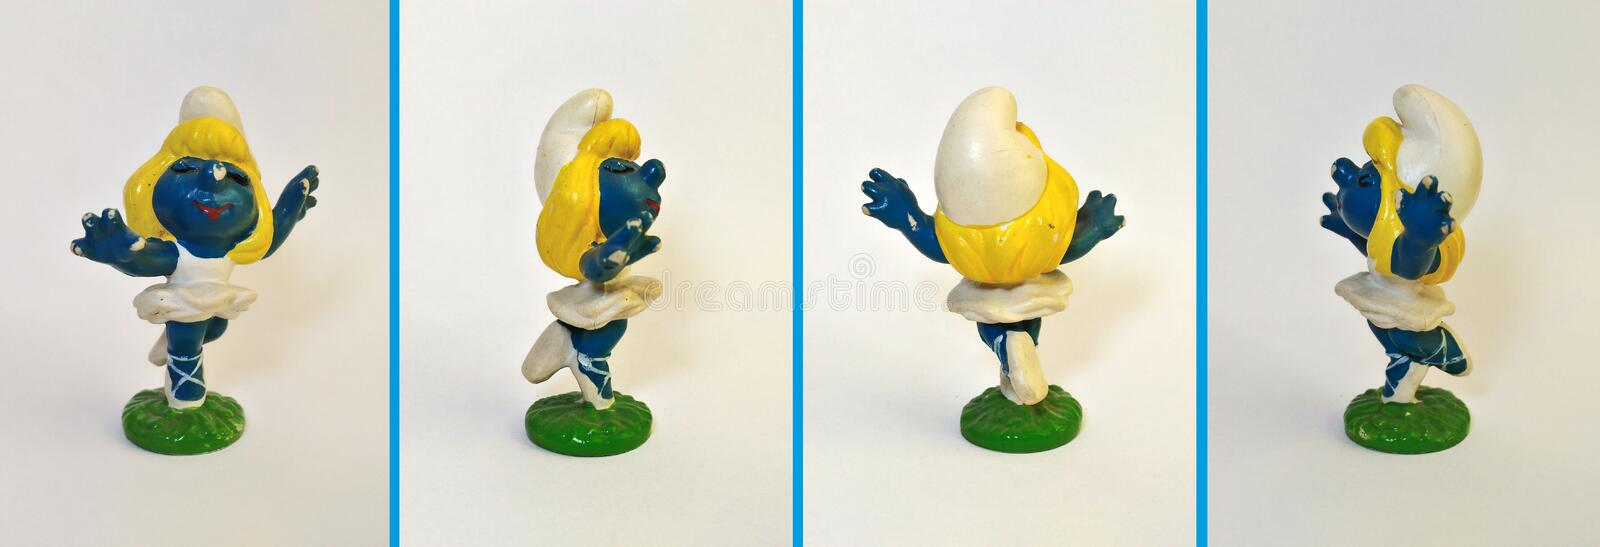 Collectible leksaker: Dansare Smurfette! royaltyfria bilder